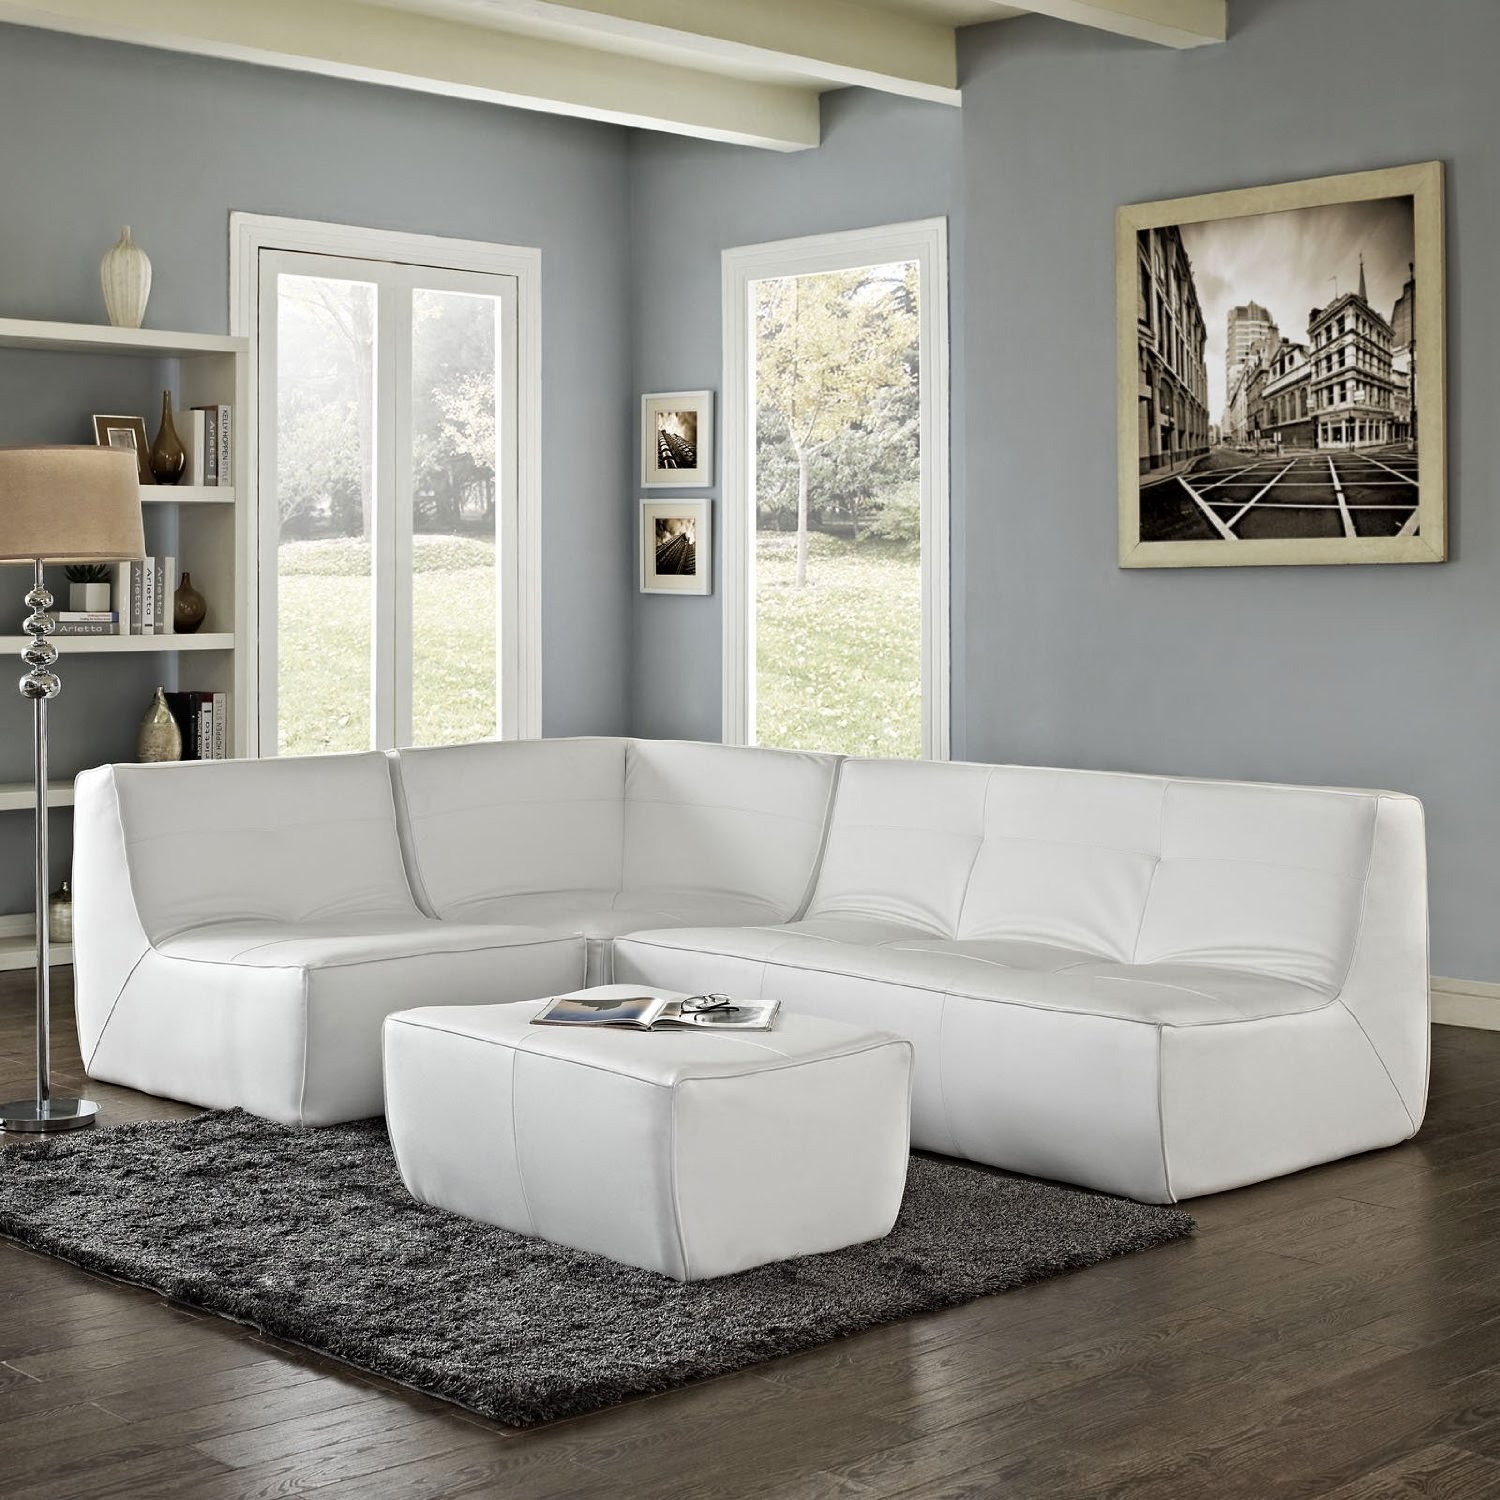 Living Room Design: Brilliant White Leather Sectional For Living ...